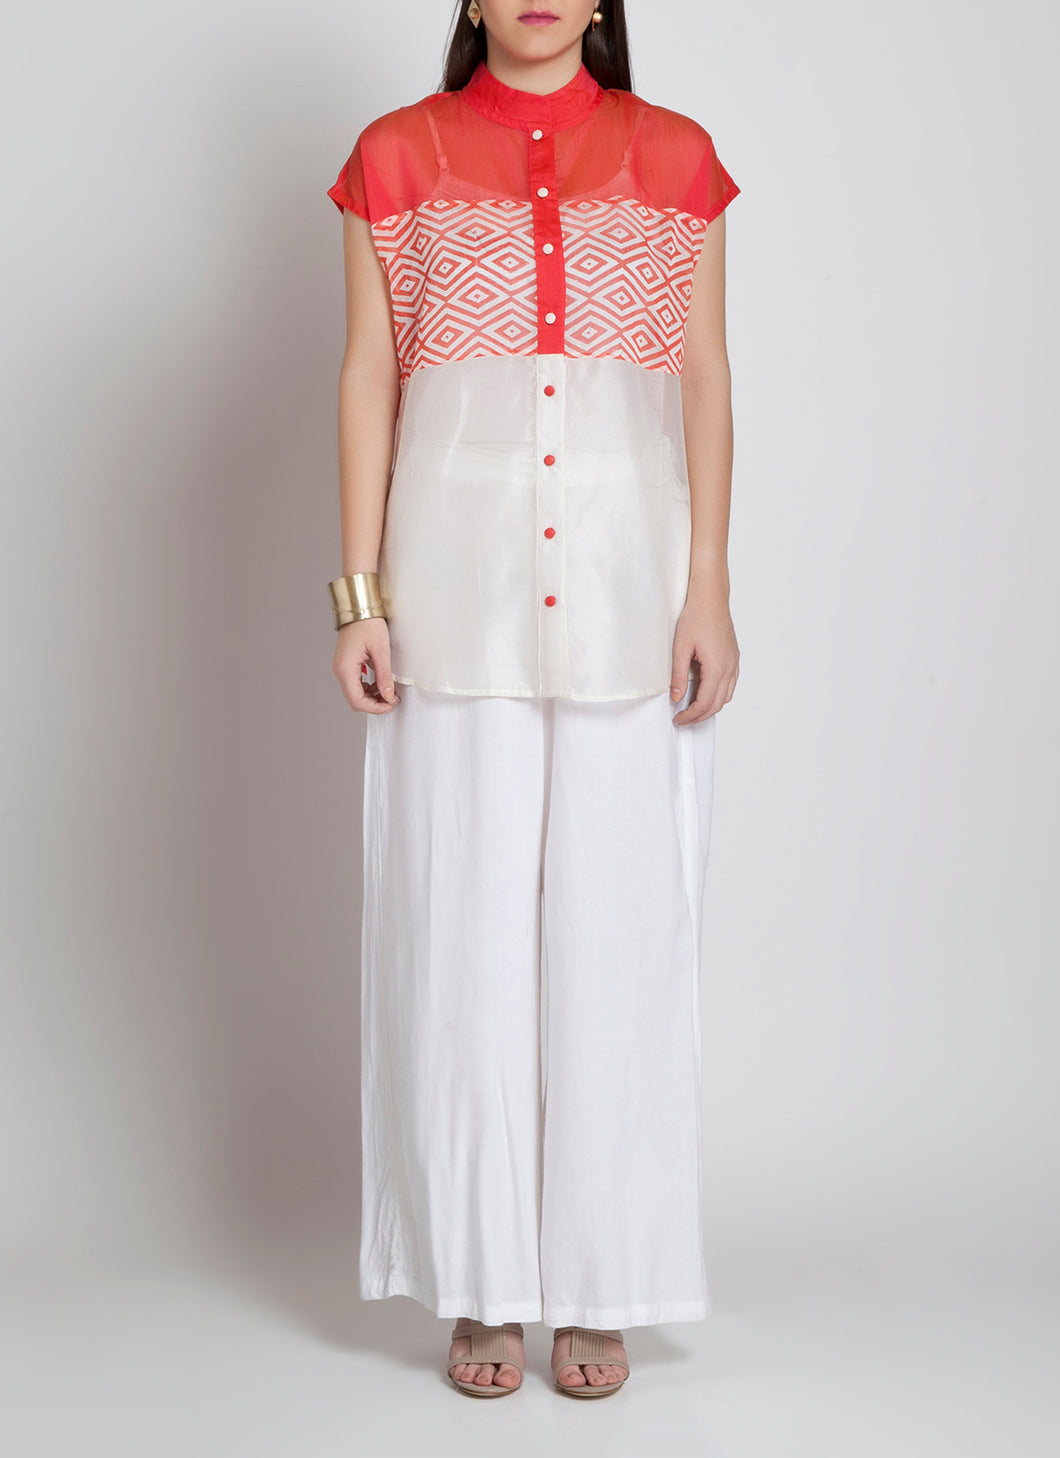 Ivory and Pink handmade front open shirt apt for all occasions.